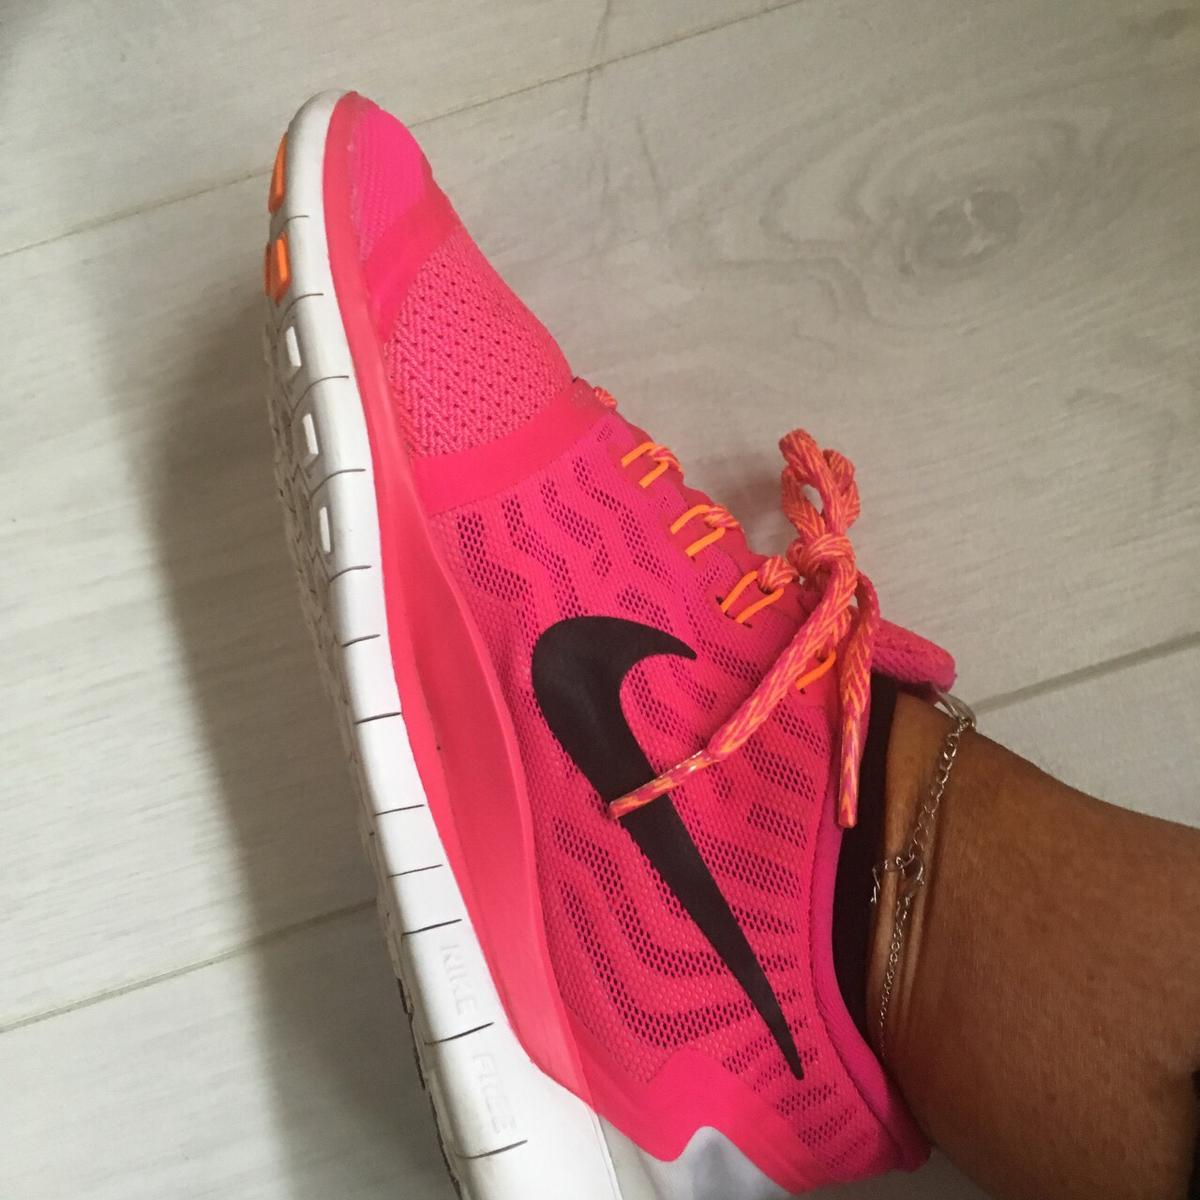 Women's Nike trainers in G74 Cambuslang for £25.00 for sale